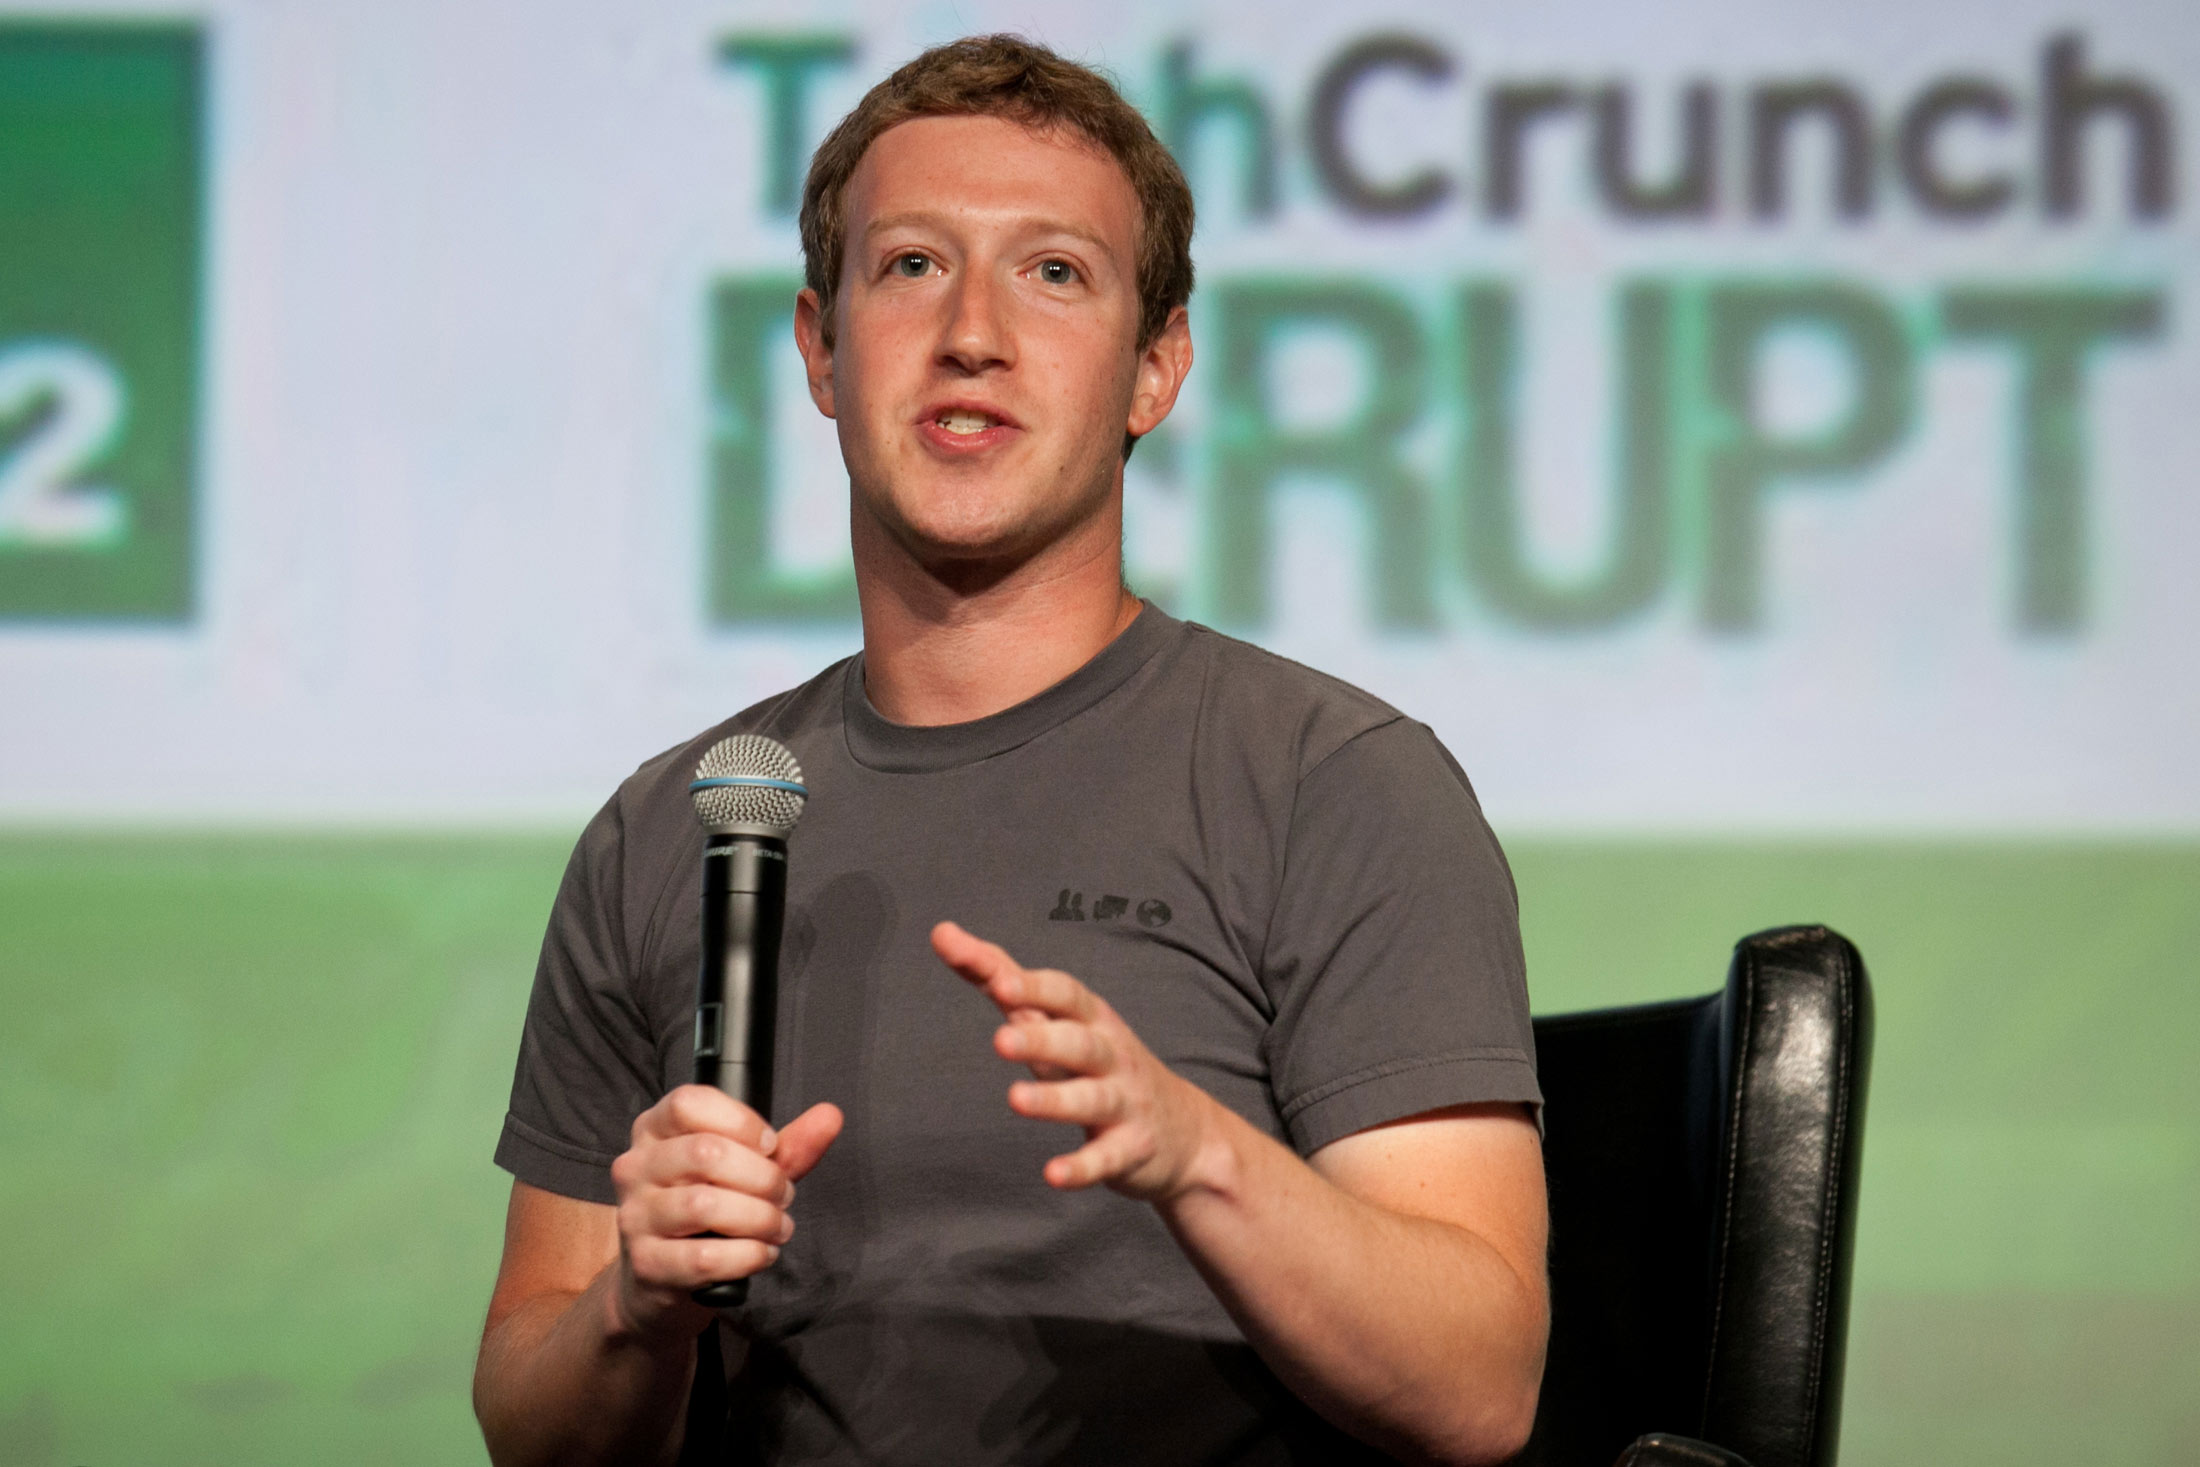 Facebook CEO Mark Zuckerberg at TechCrunch Disrupt 2012.